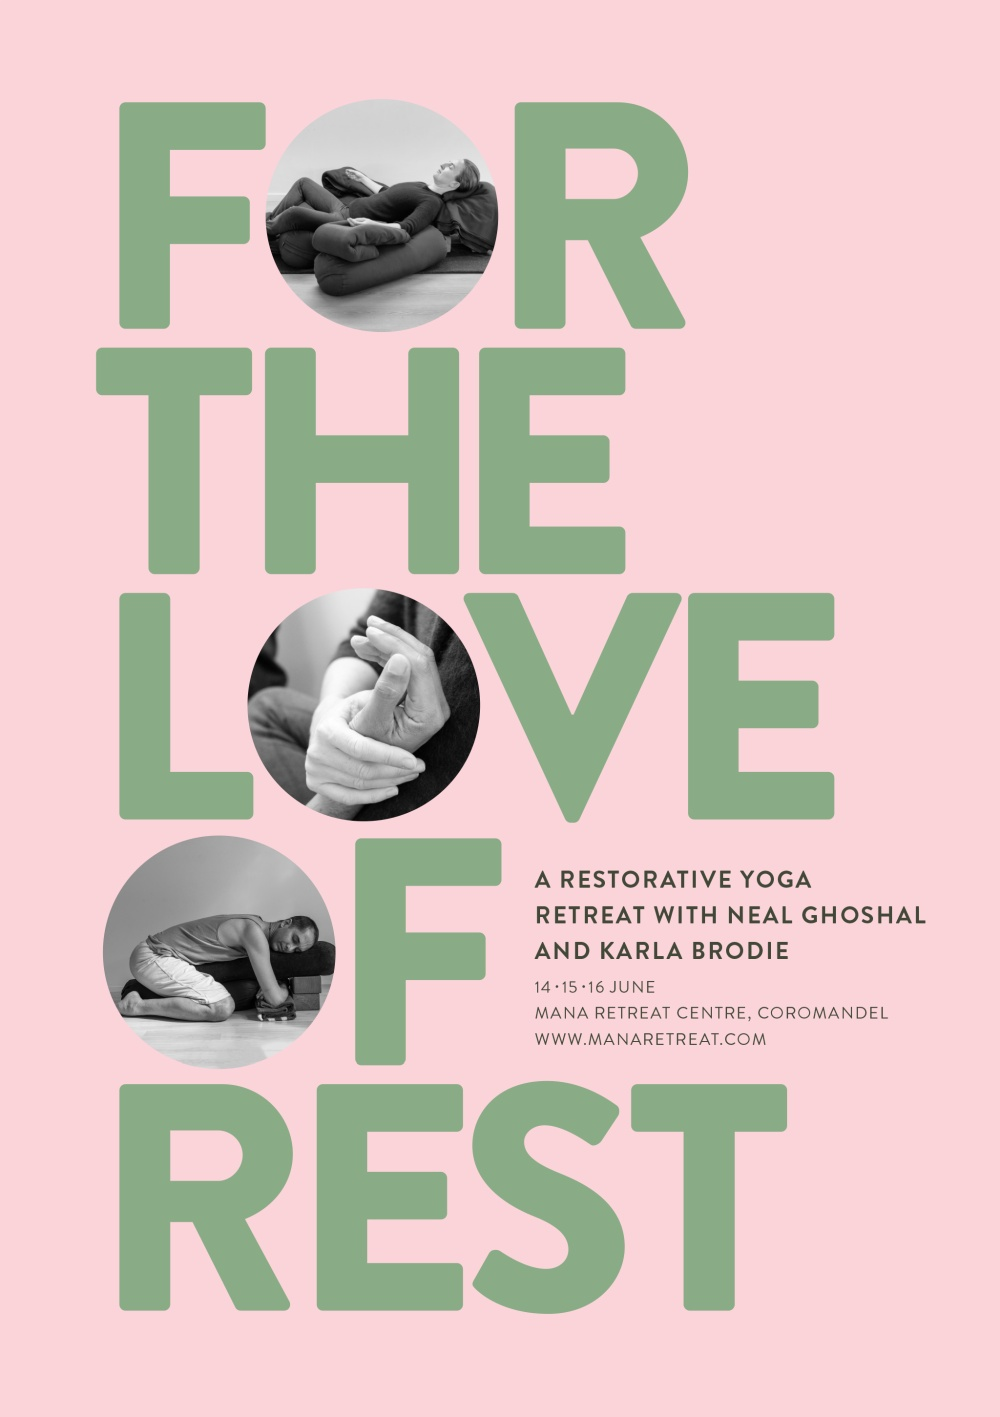 The Love Of Rest, a Restorative Yoga Retreat at Mana Retreat Centre, Coromandel, New Zealand, June 2019